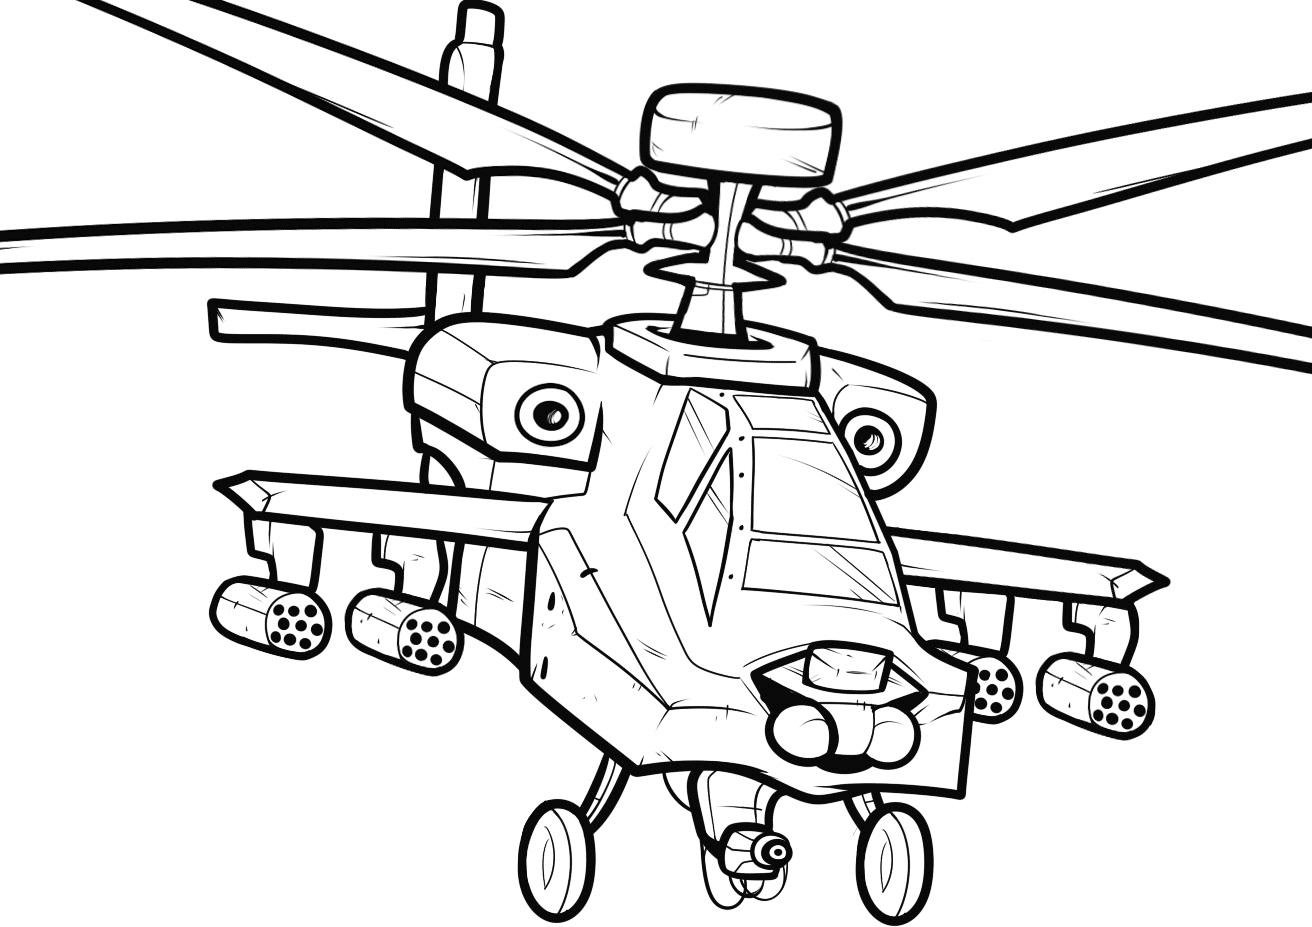 1312x927 Army Helicopter Coloring Pages To Print For Kids Within